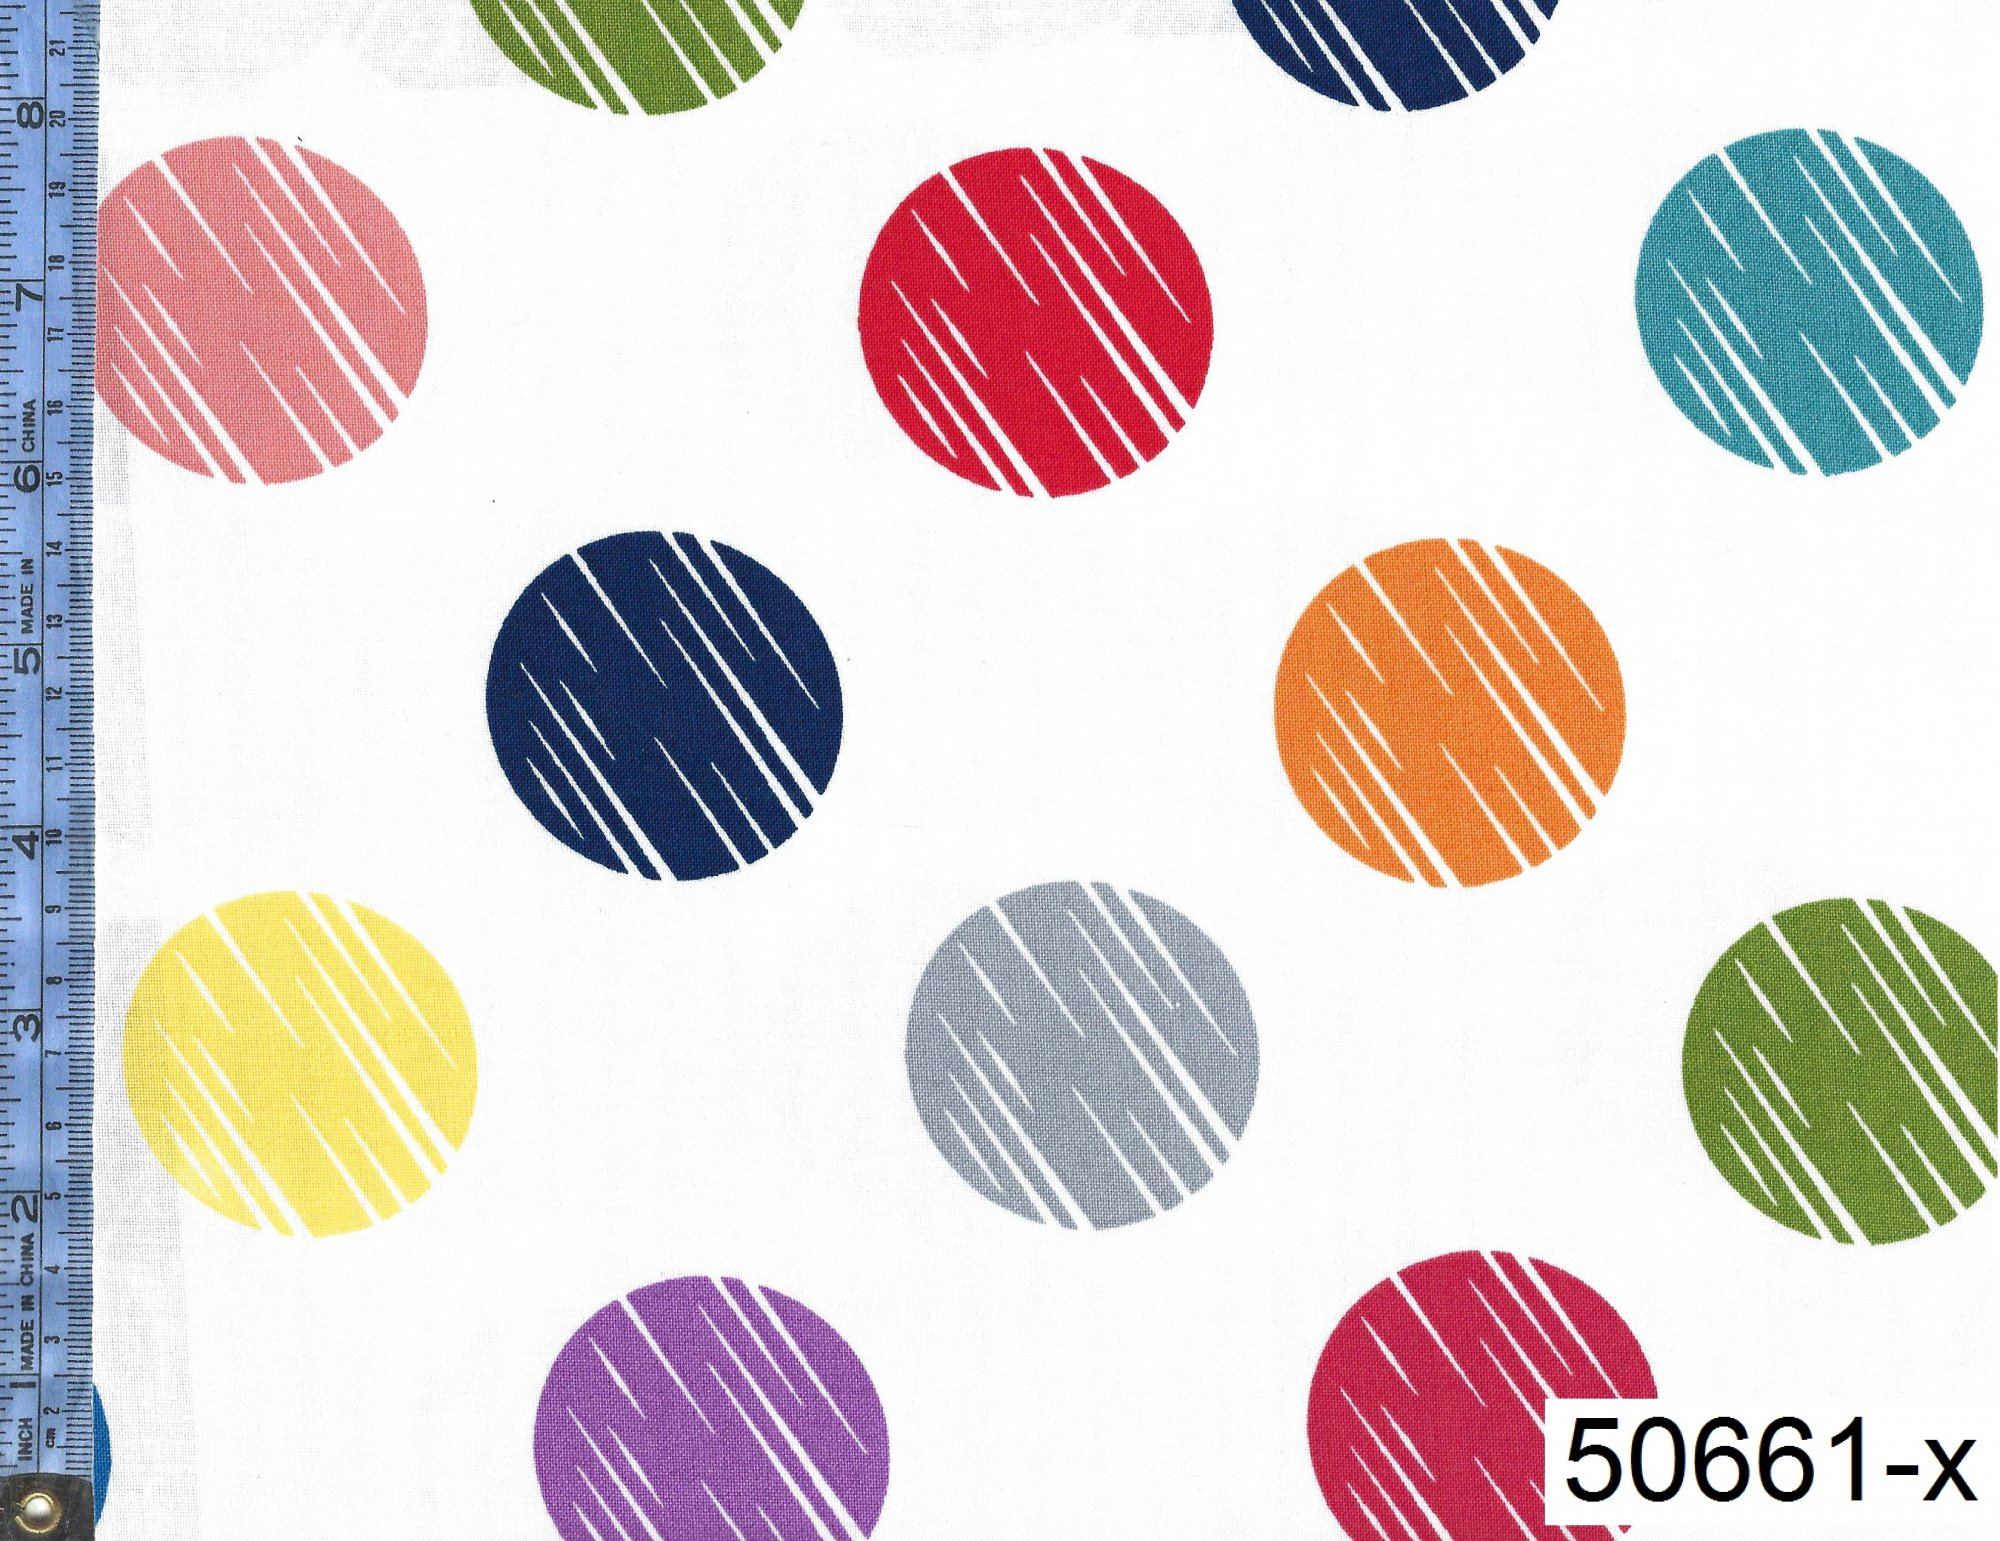 108 inch Quilt Back - (50661-x)